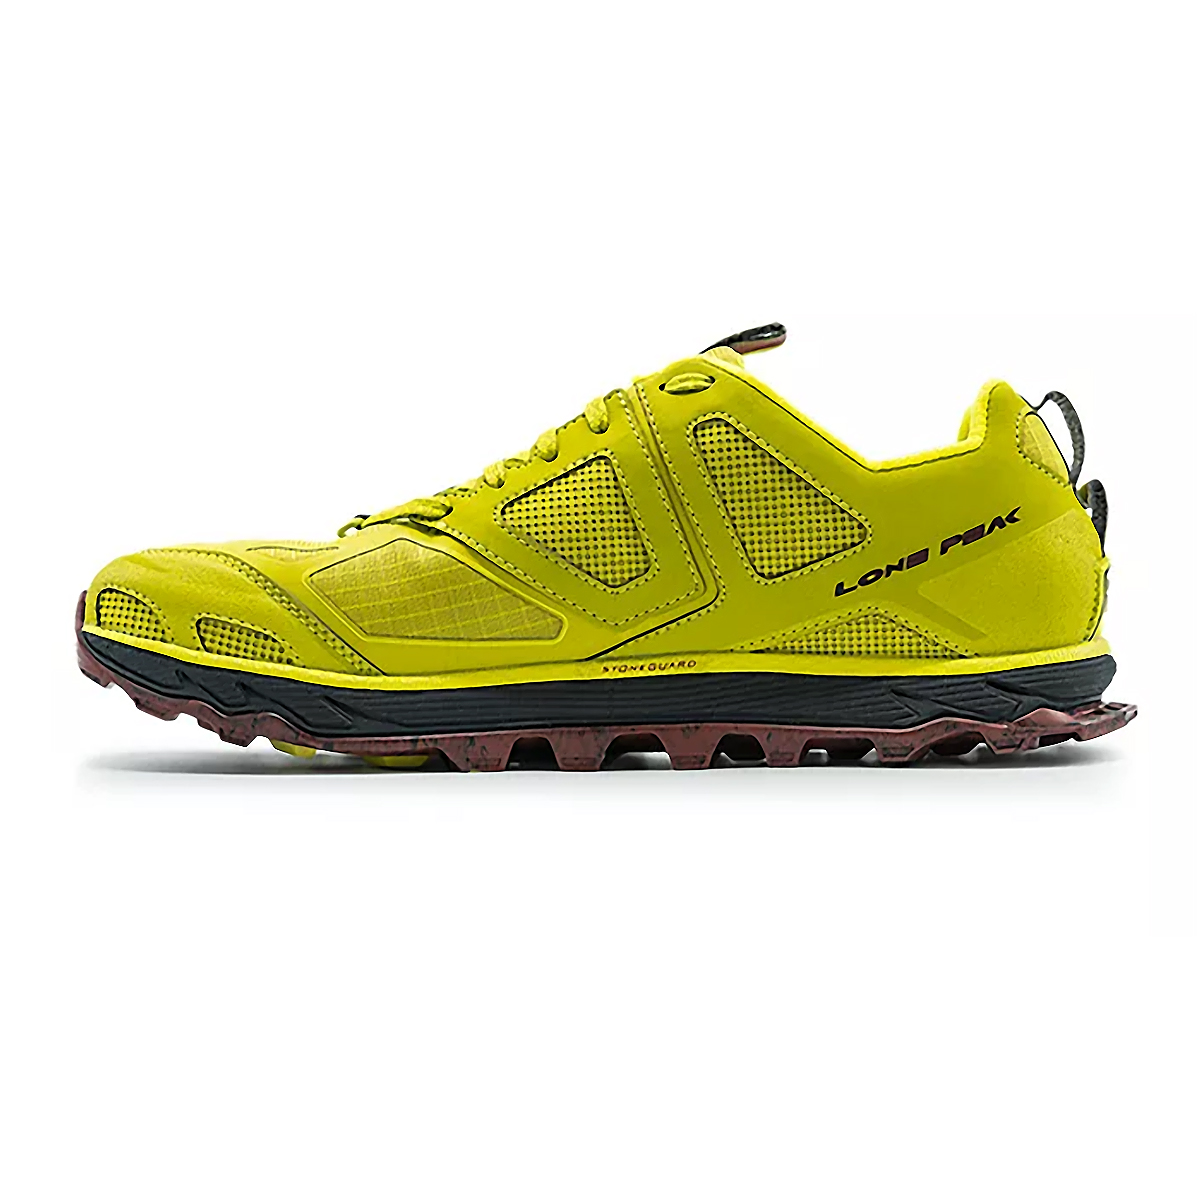 Men's Altra Lone Peak 4.5 Low Trail Running Shoe - Color: Lime/Red - Size: 7 - Width: Regular, Lime/Red, large, image 2